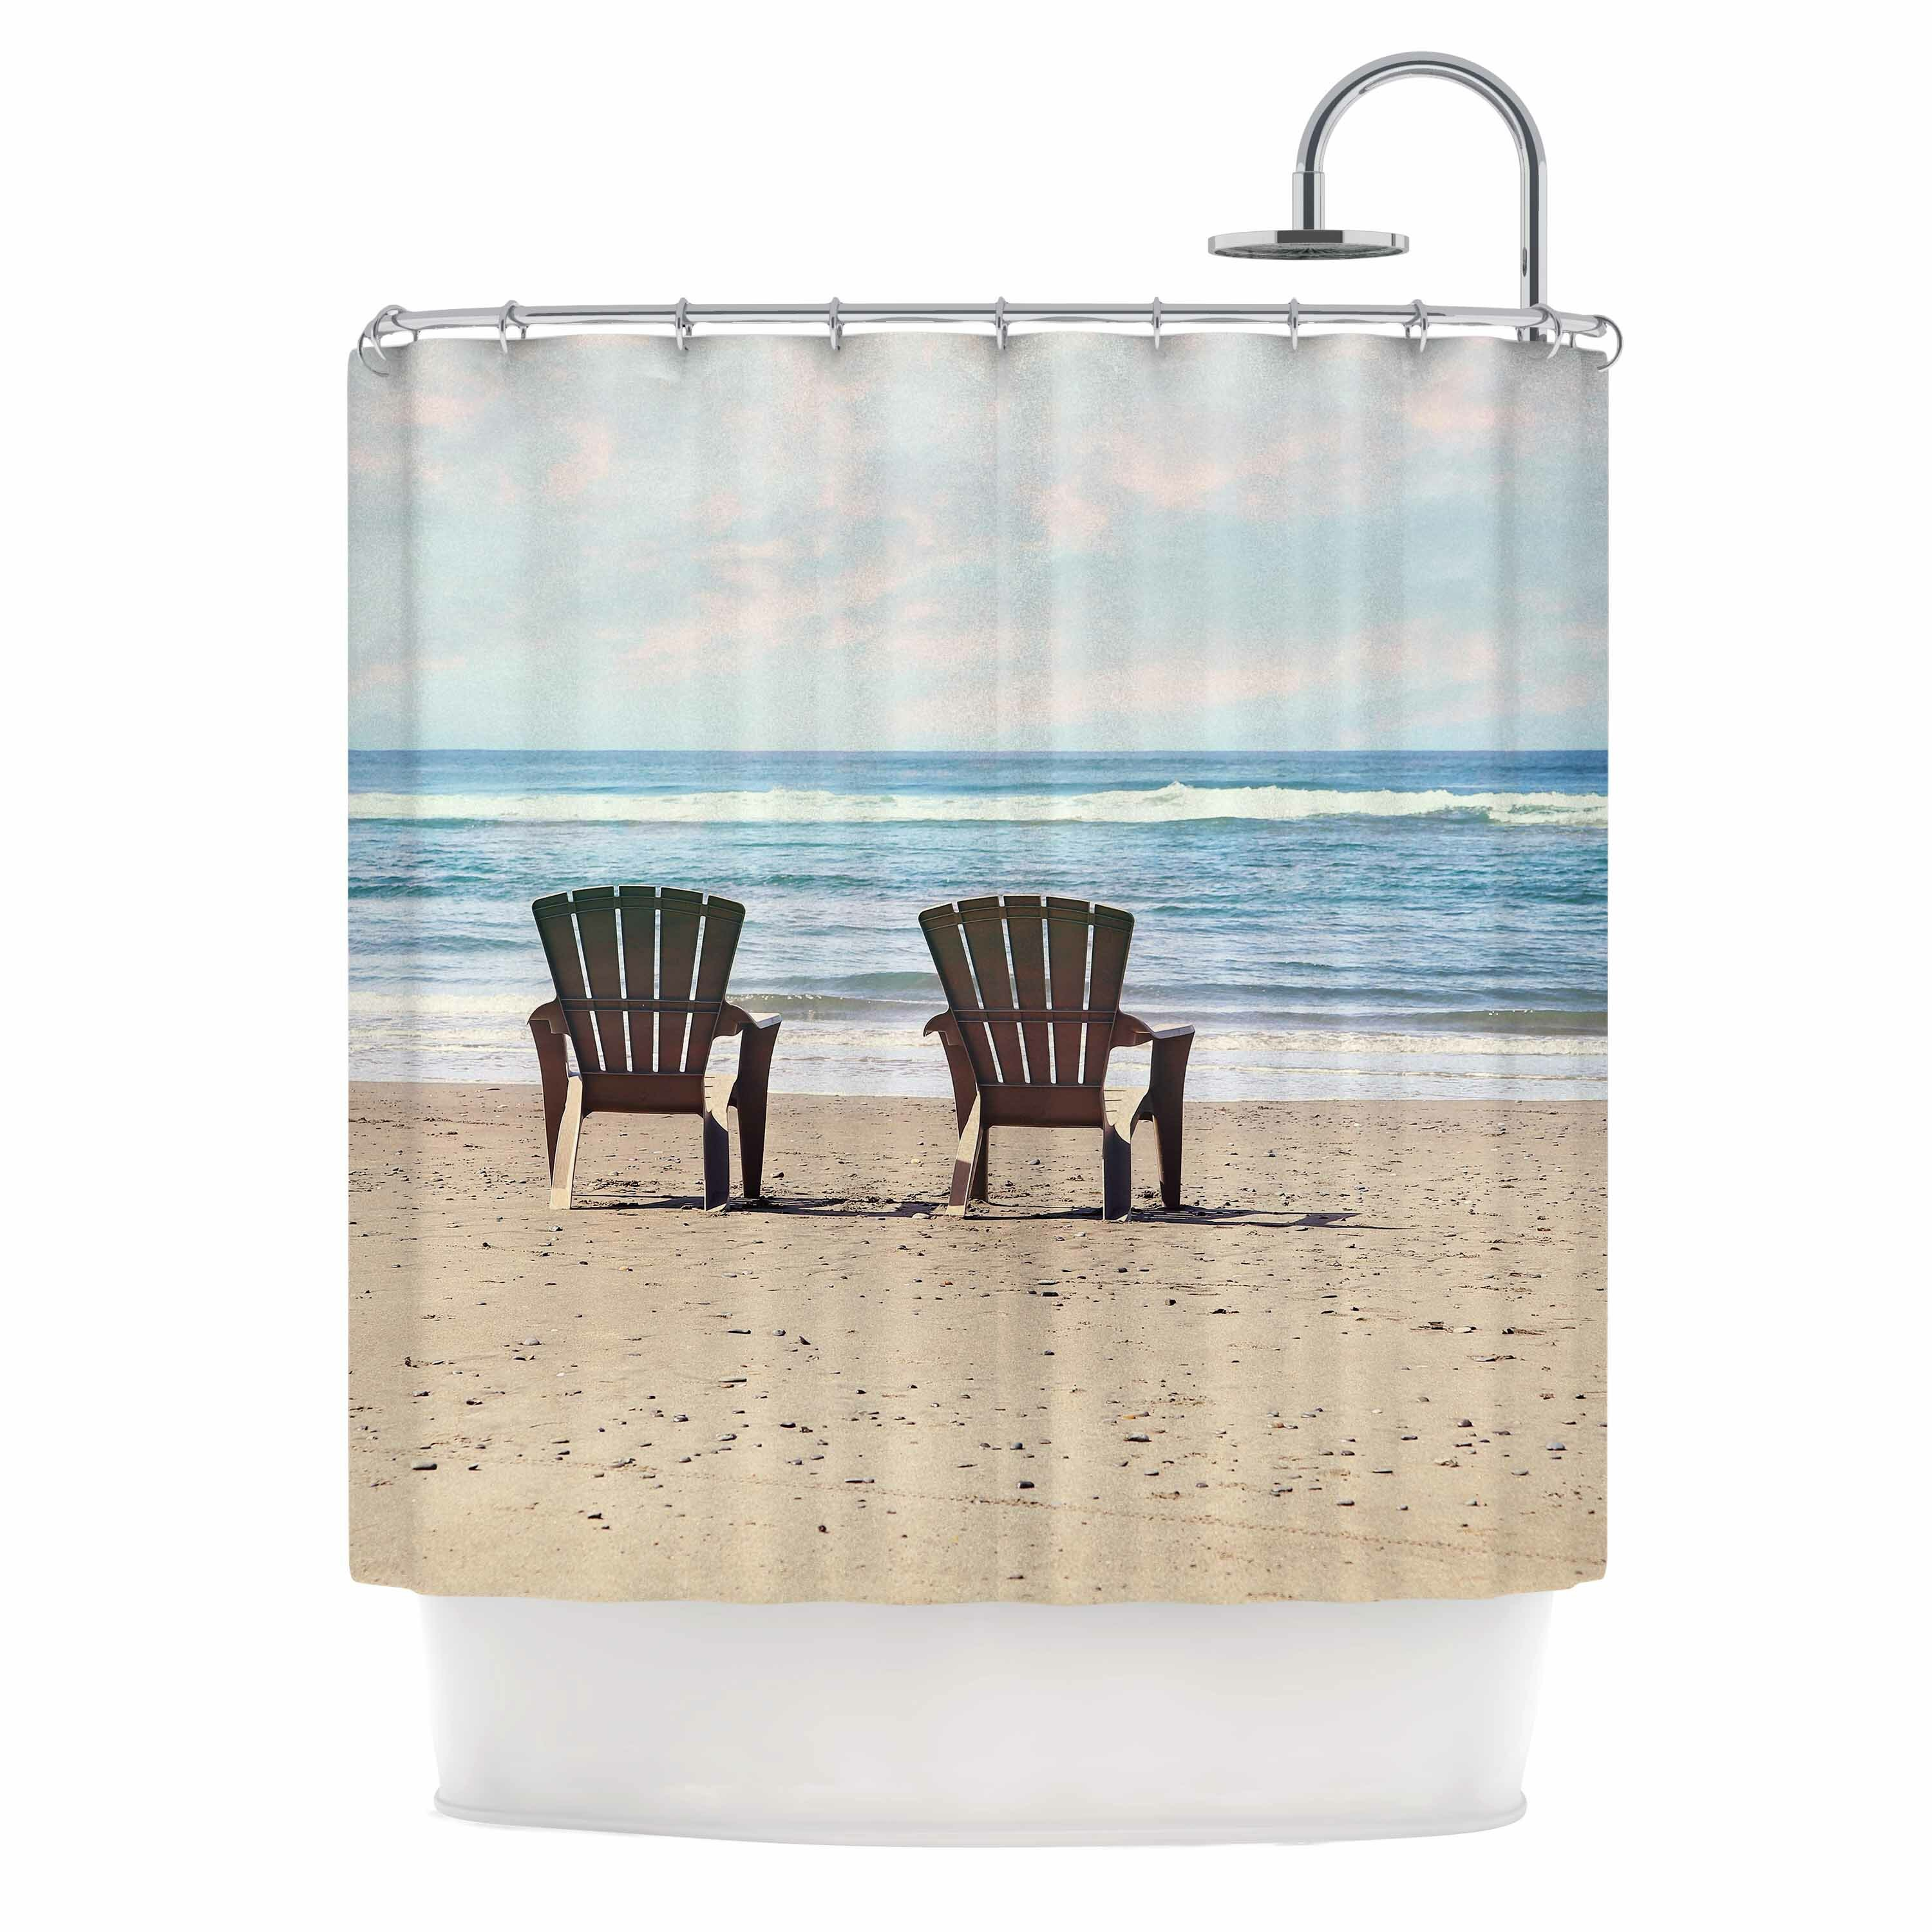 East Urban Home A Great View Travel Shower Curtain